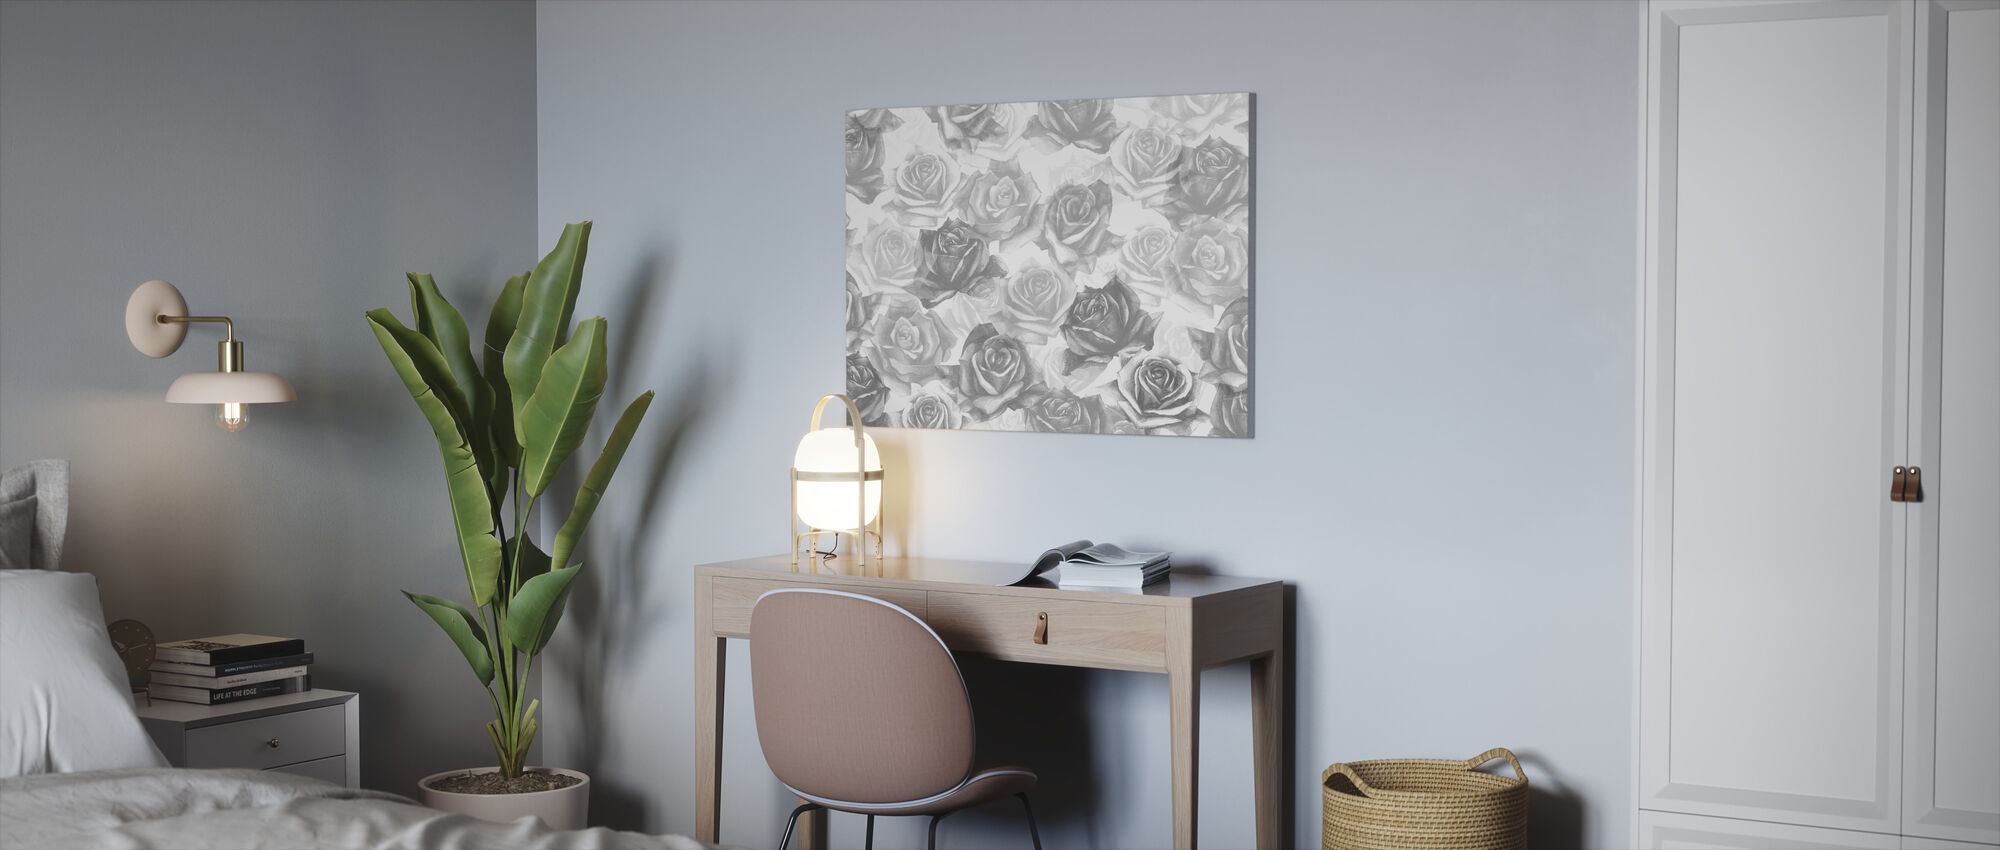 My Grey Roses - Canvas print - Office